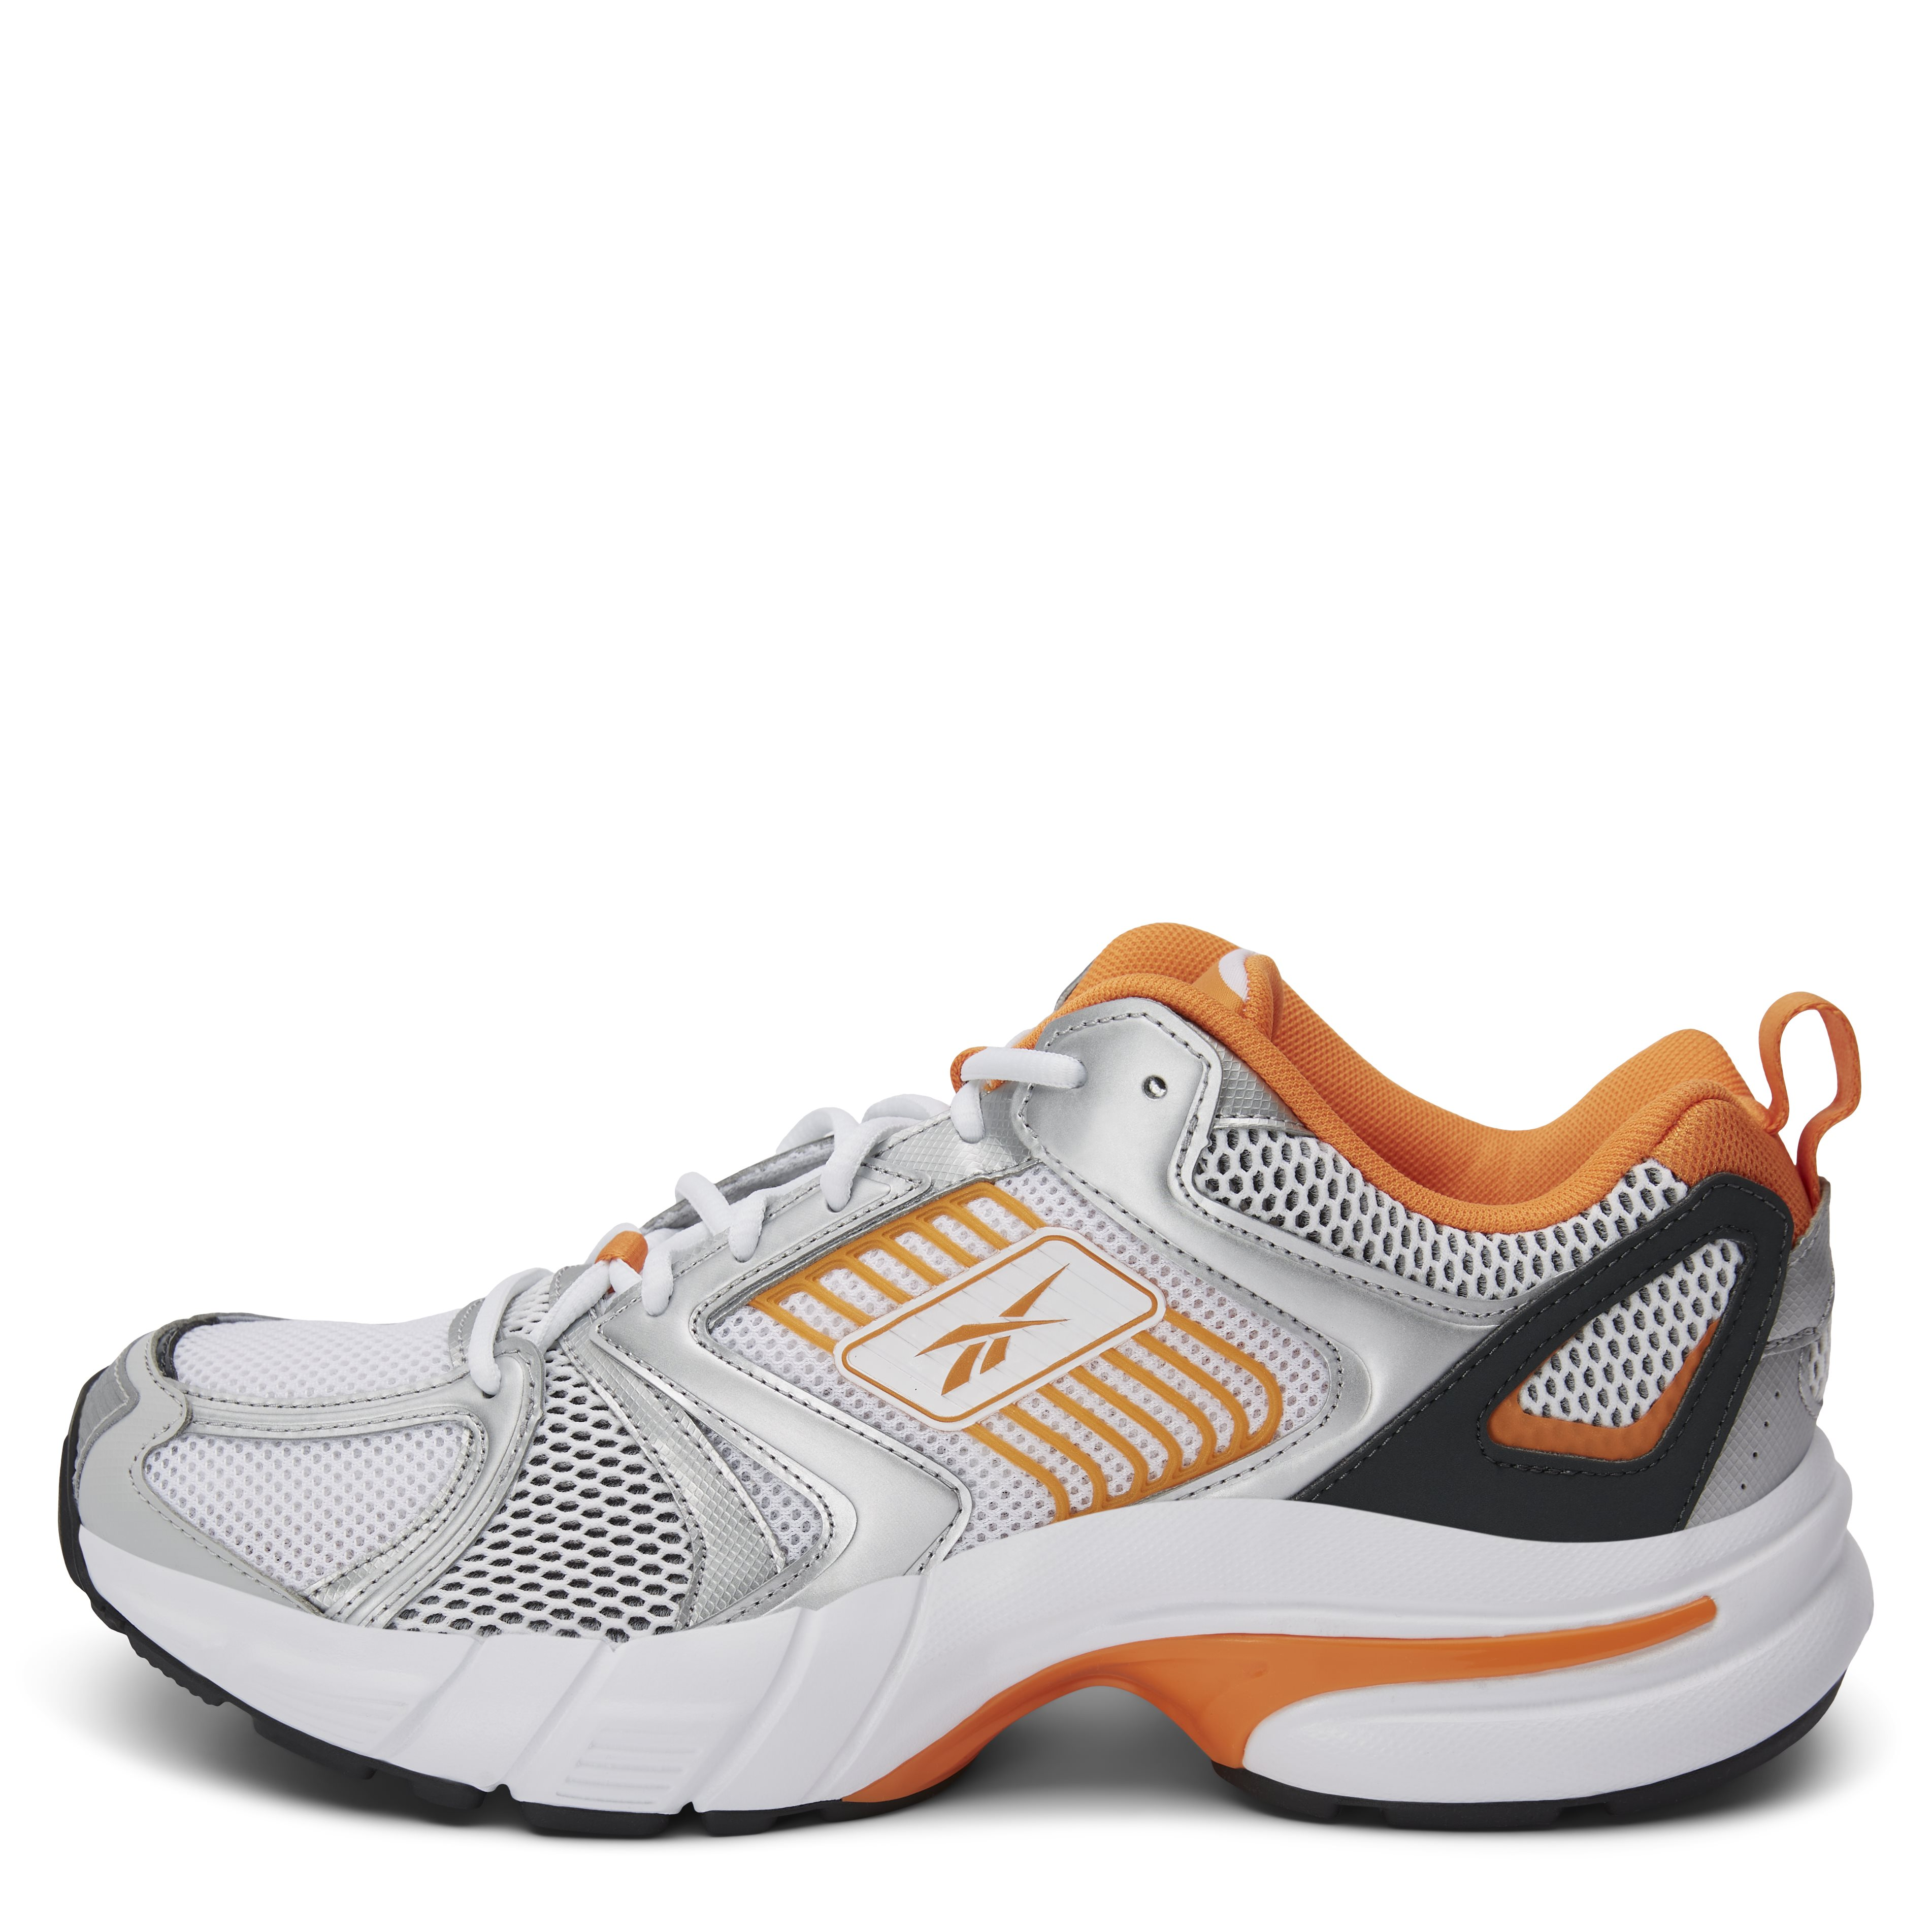 RBK Premier Sneaker - Skor - Orange